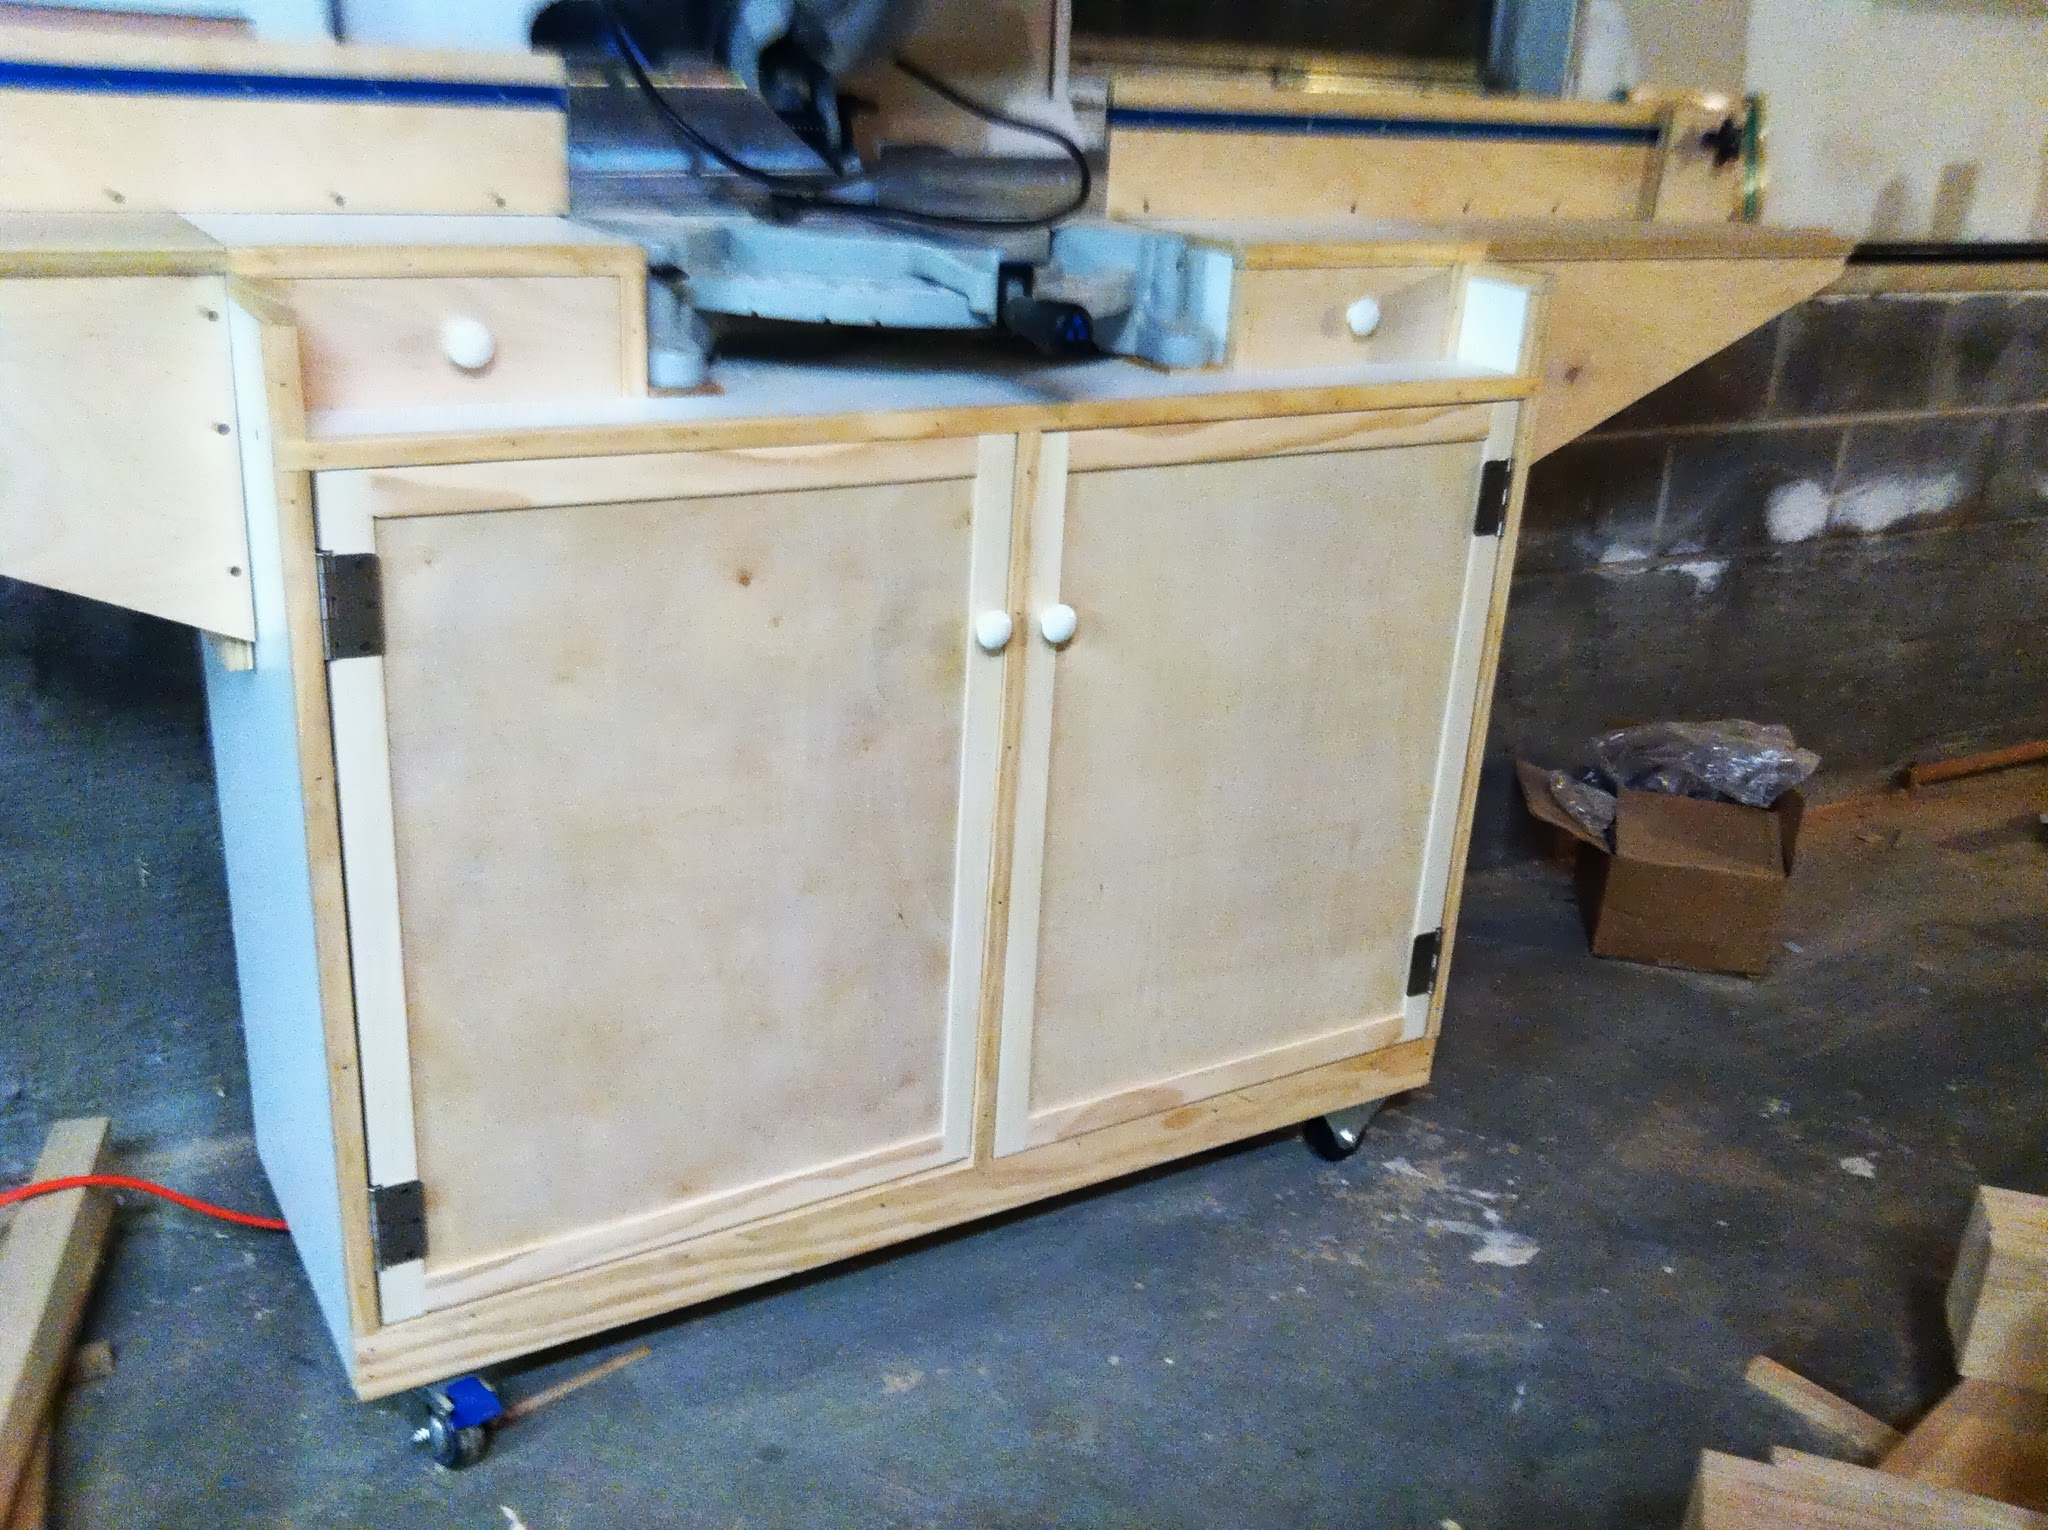 The final work was installing the doors and easing the edges